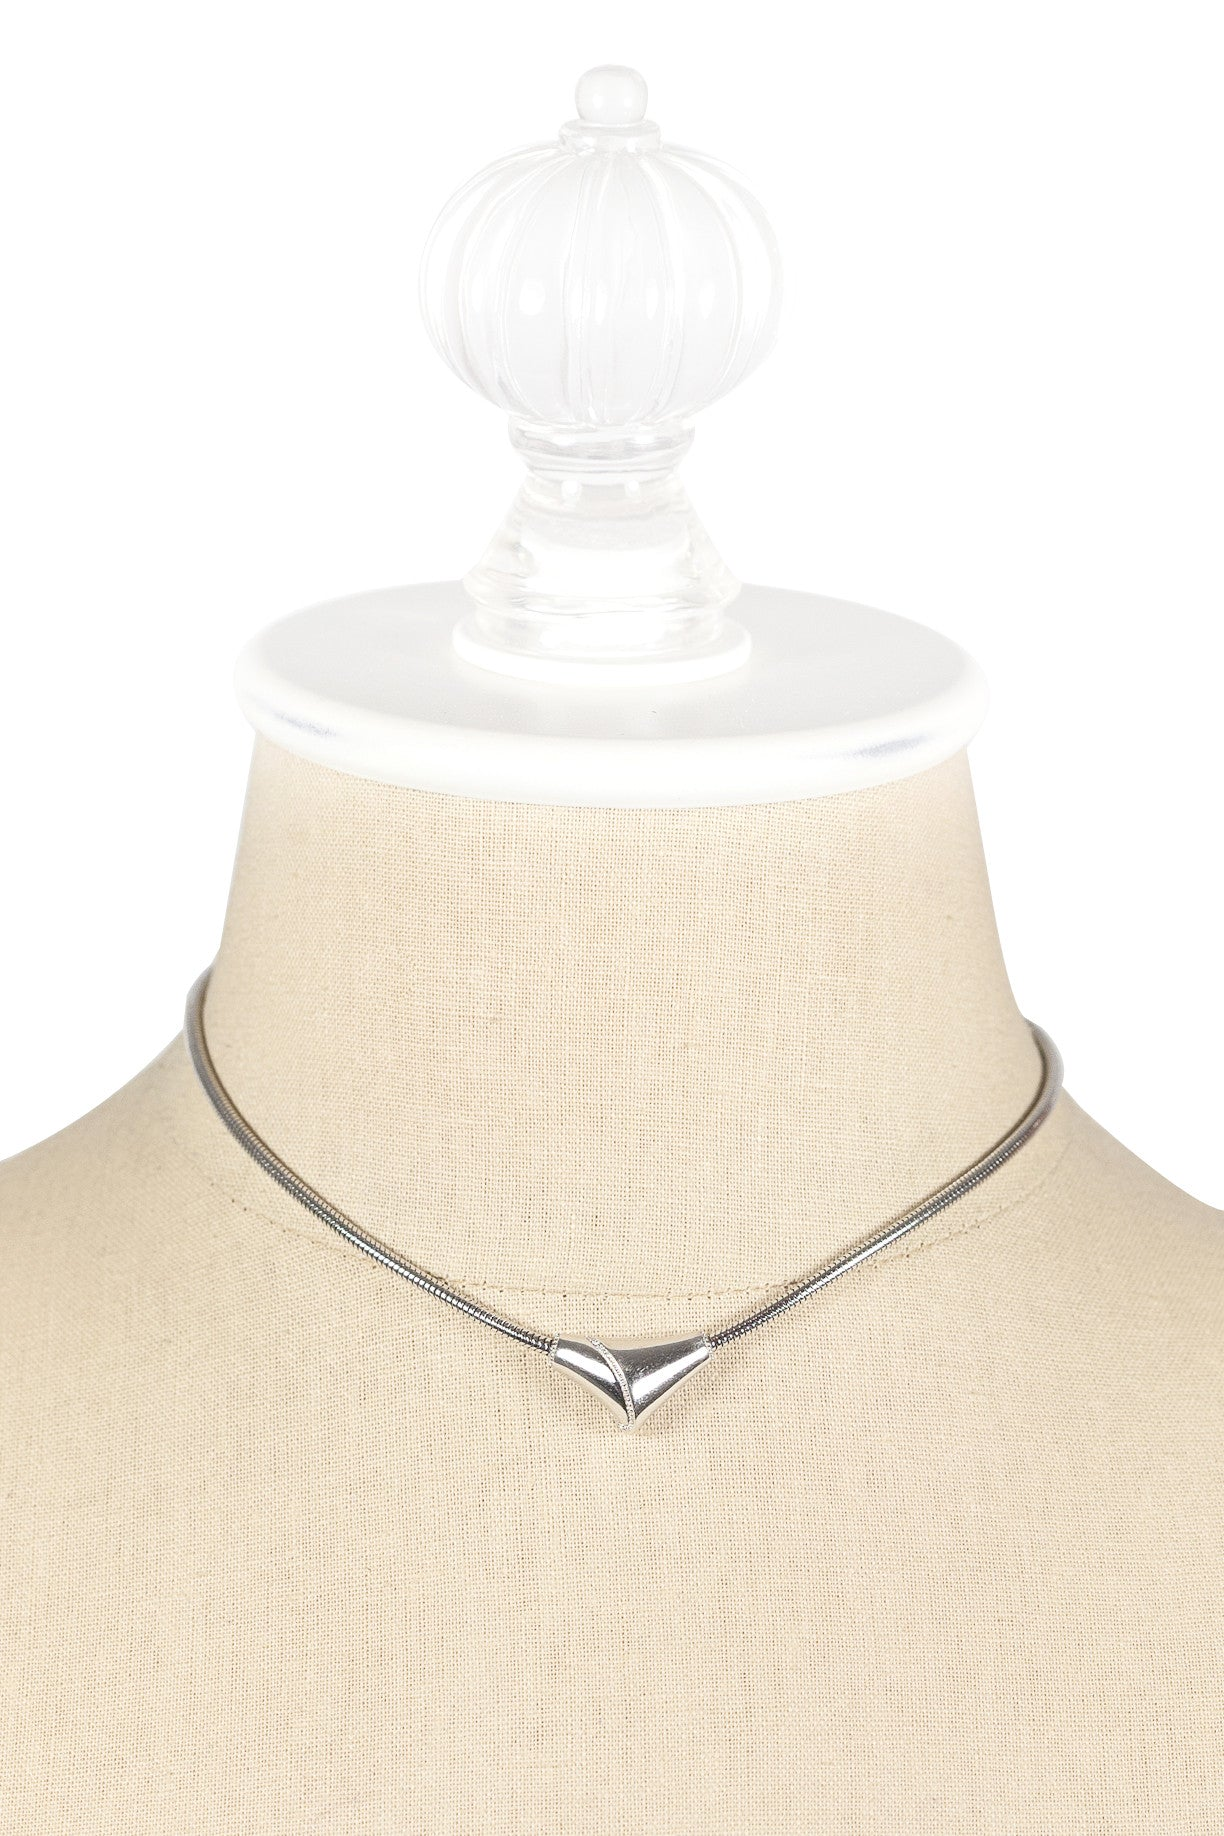 80's__Monet__Silver Triangle Necklace